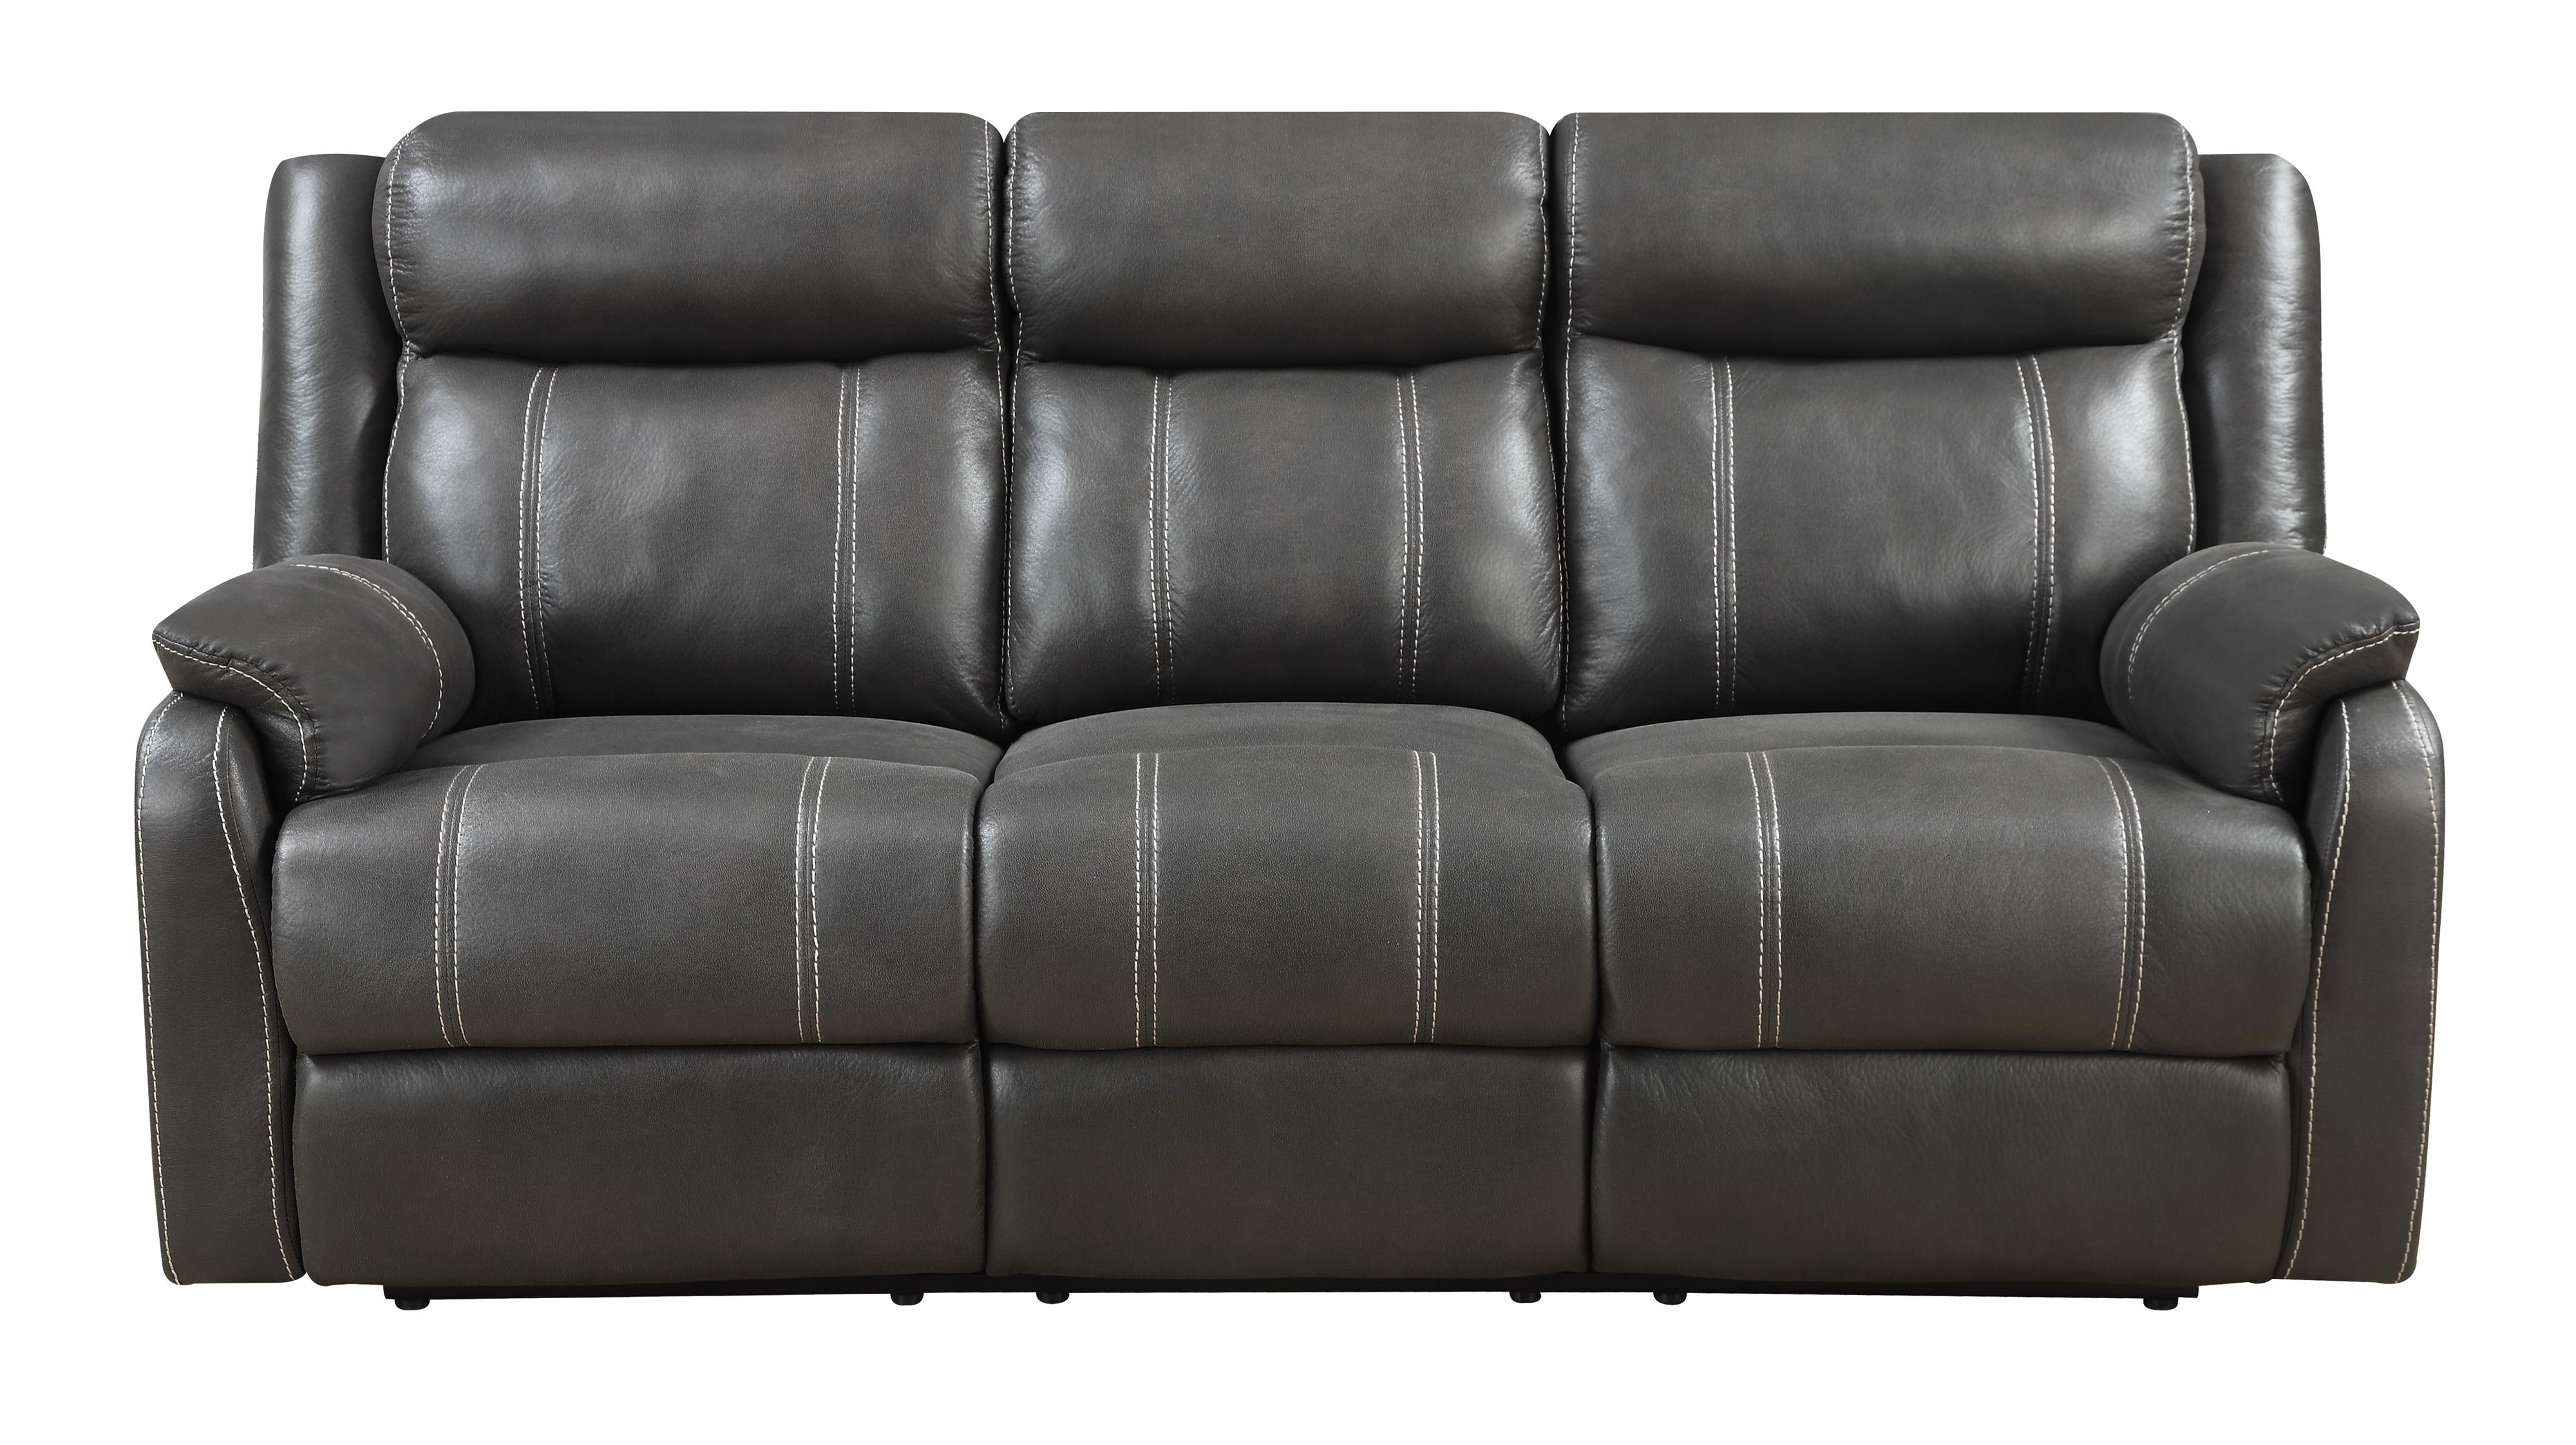 Domino-US Reclining Sofa W/table at Walker's Furniture